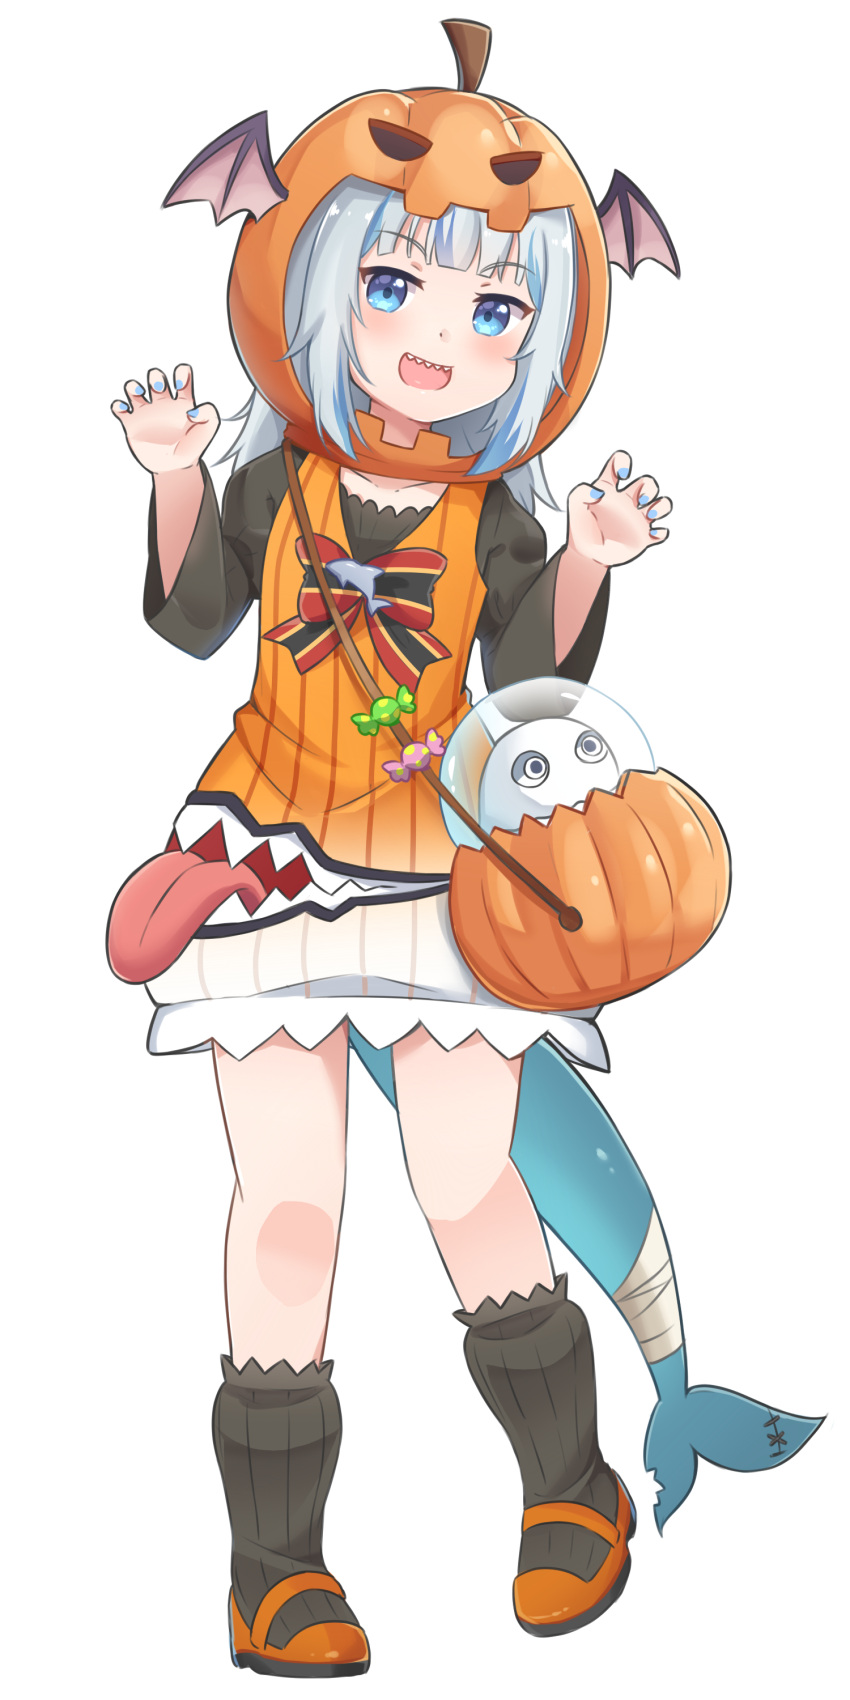 1girl absurdres bag bangs black_legwear black_shirt bloop_(gawr_gura) blue_eyes blue_hair blue_nails bow claw_pose commentary dress eyebrows_visible_through_hair fish_tail gawr_gura grey_hair halloween halloween_bucket hands_up highres hololive hololive_english juliet_sleeves long_hair long_sleeves looking_at_viewer multicolored_hair orange_dress orange_footwear puffy_sleeves pumpkin_hat ribbed_legwear rutorifuki shark_tail shirt shoes shoulder_bag simple_background sleeveless sleeveless_dress socks streaked_hair striped striped_bow tail virtual_youtuber white_background wide_sleeves